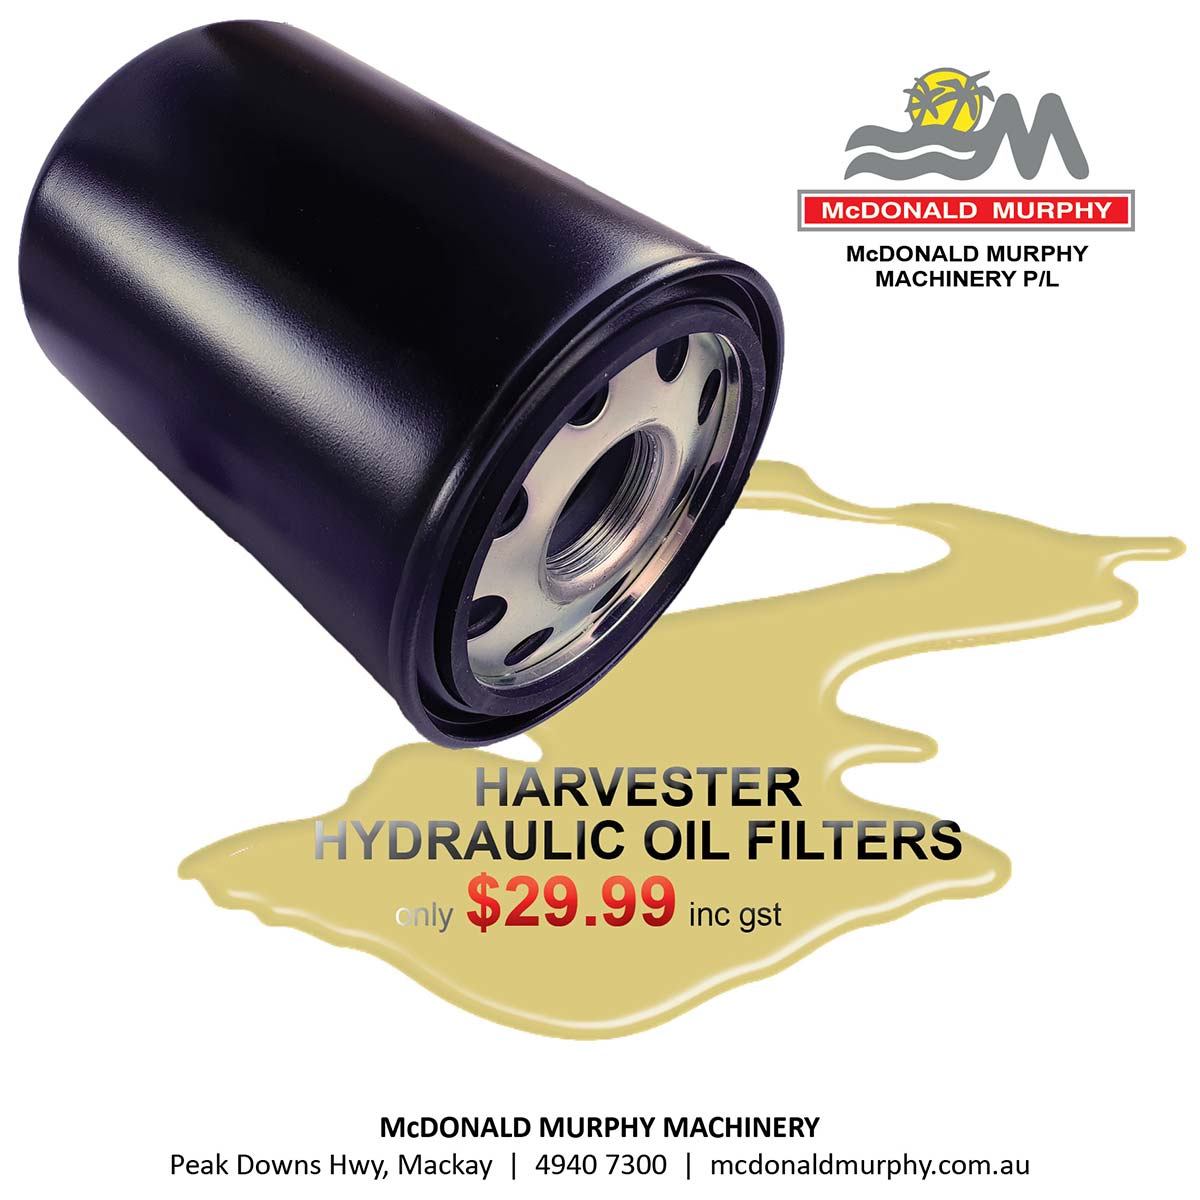 hydraulic oil filter special may 2019